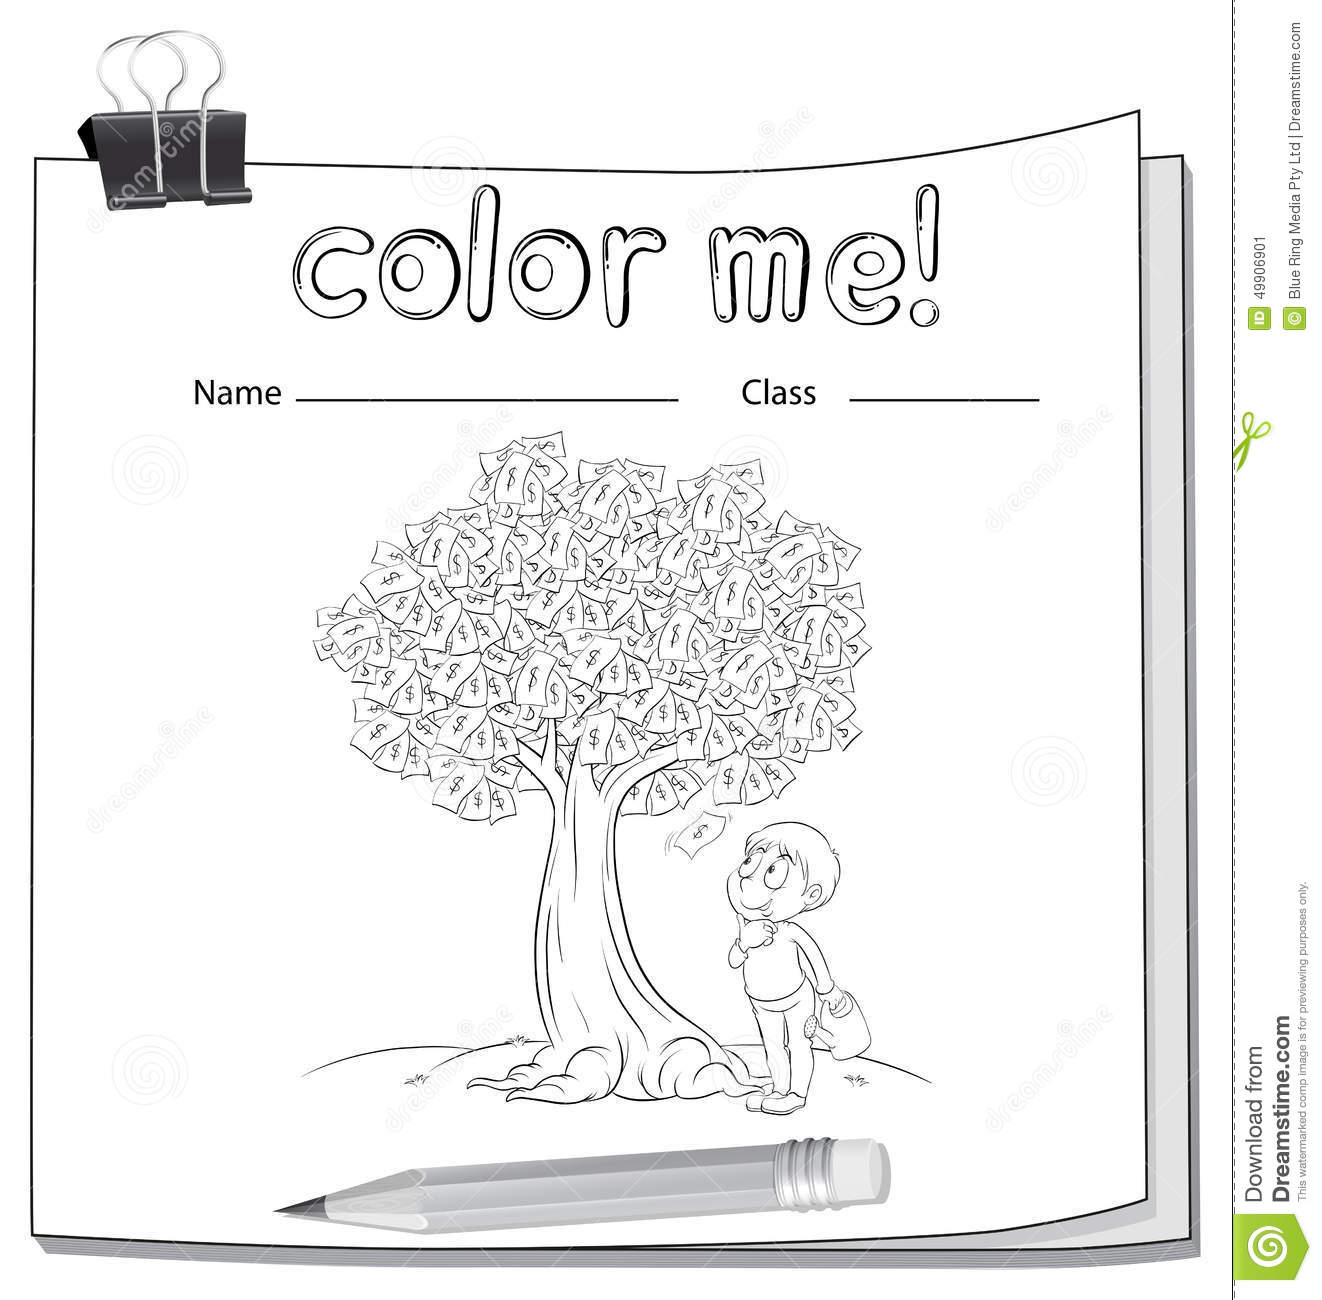 A Worksheet With A Money Tree And A Boy Stock Vector